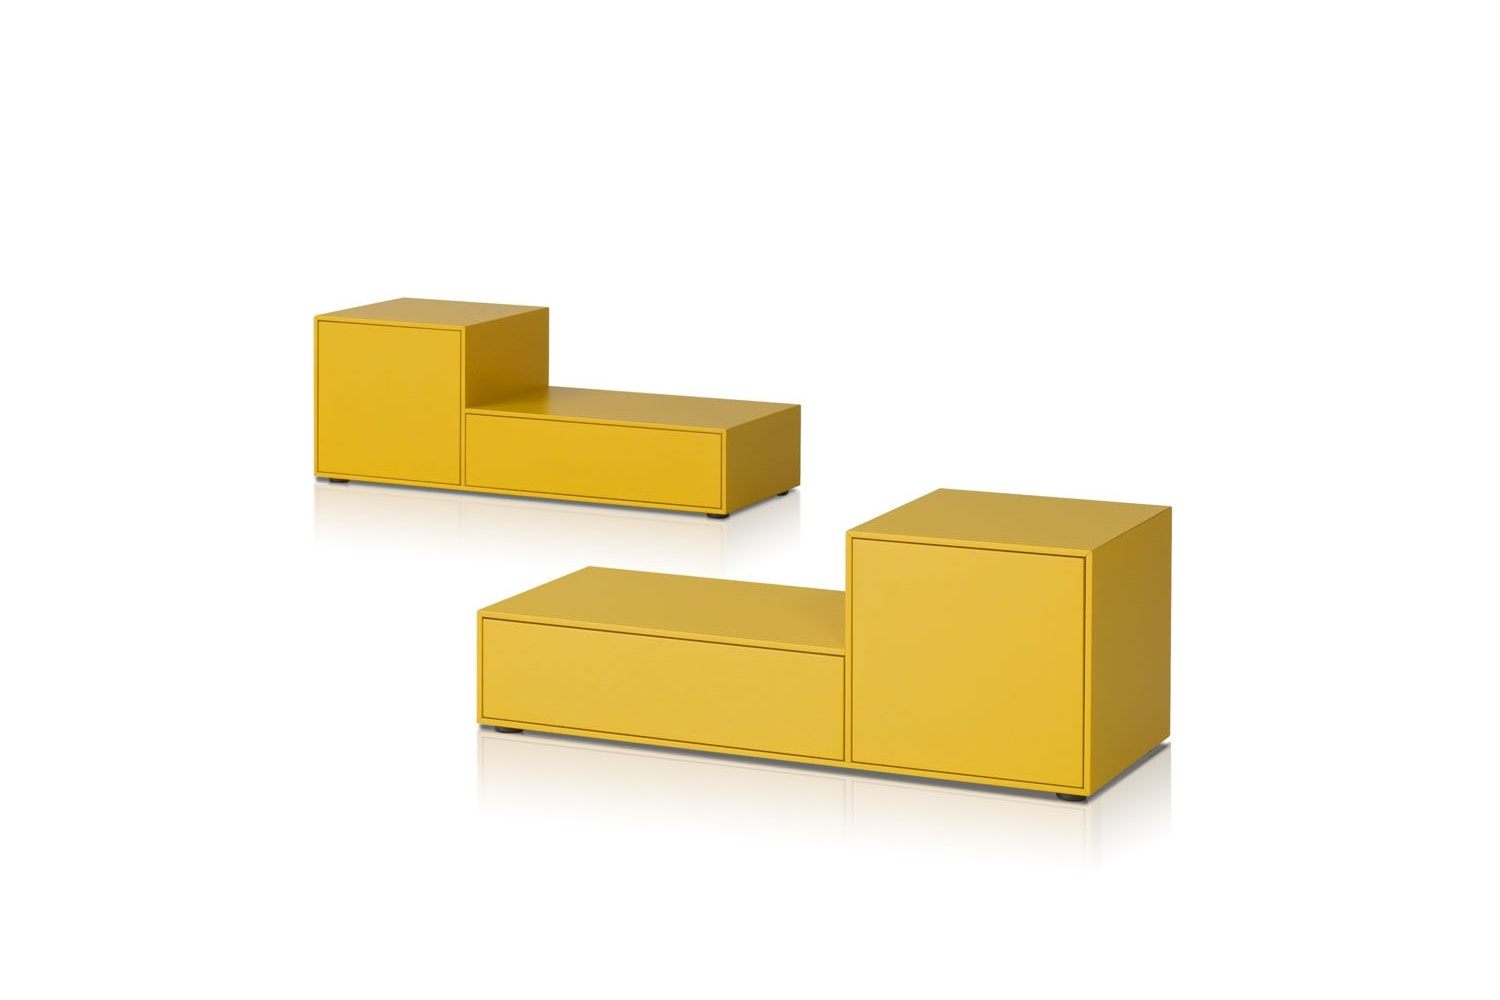 Truck Bedside Table by Piero Lissoni for Porro